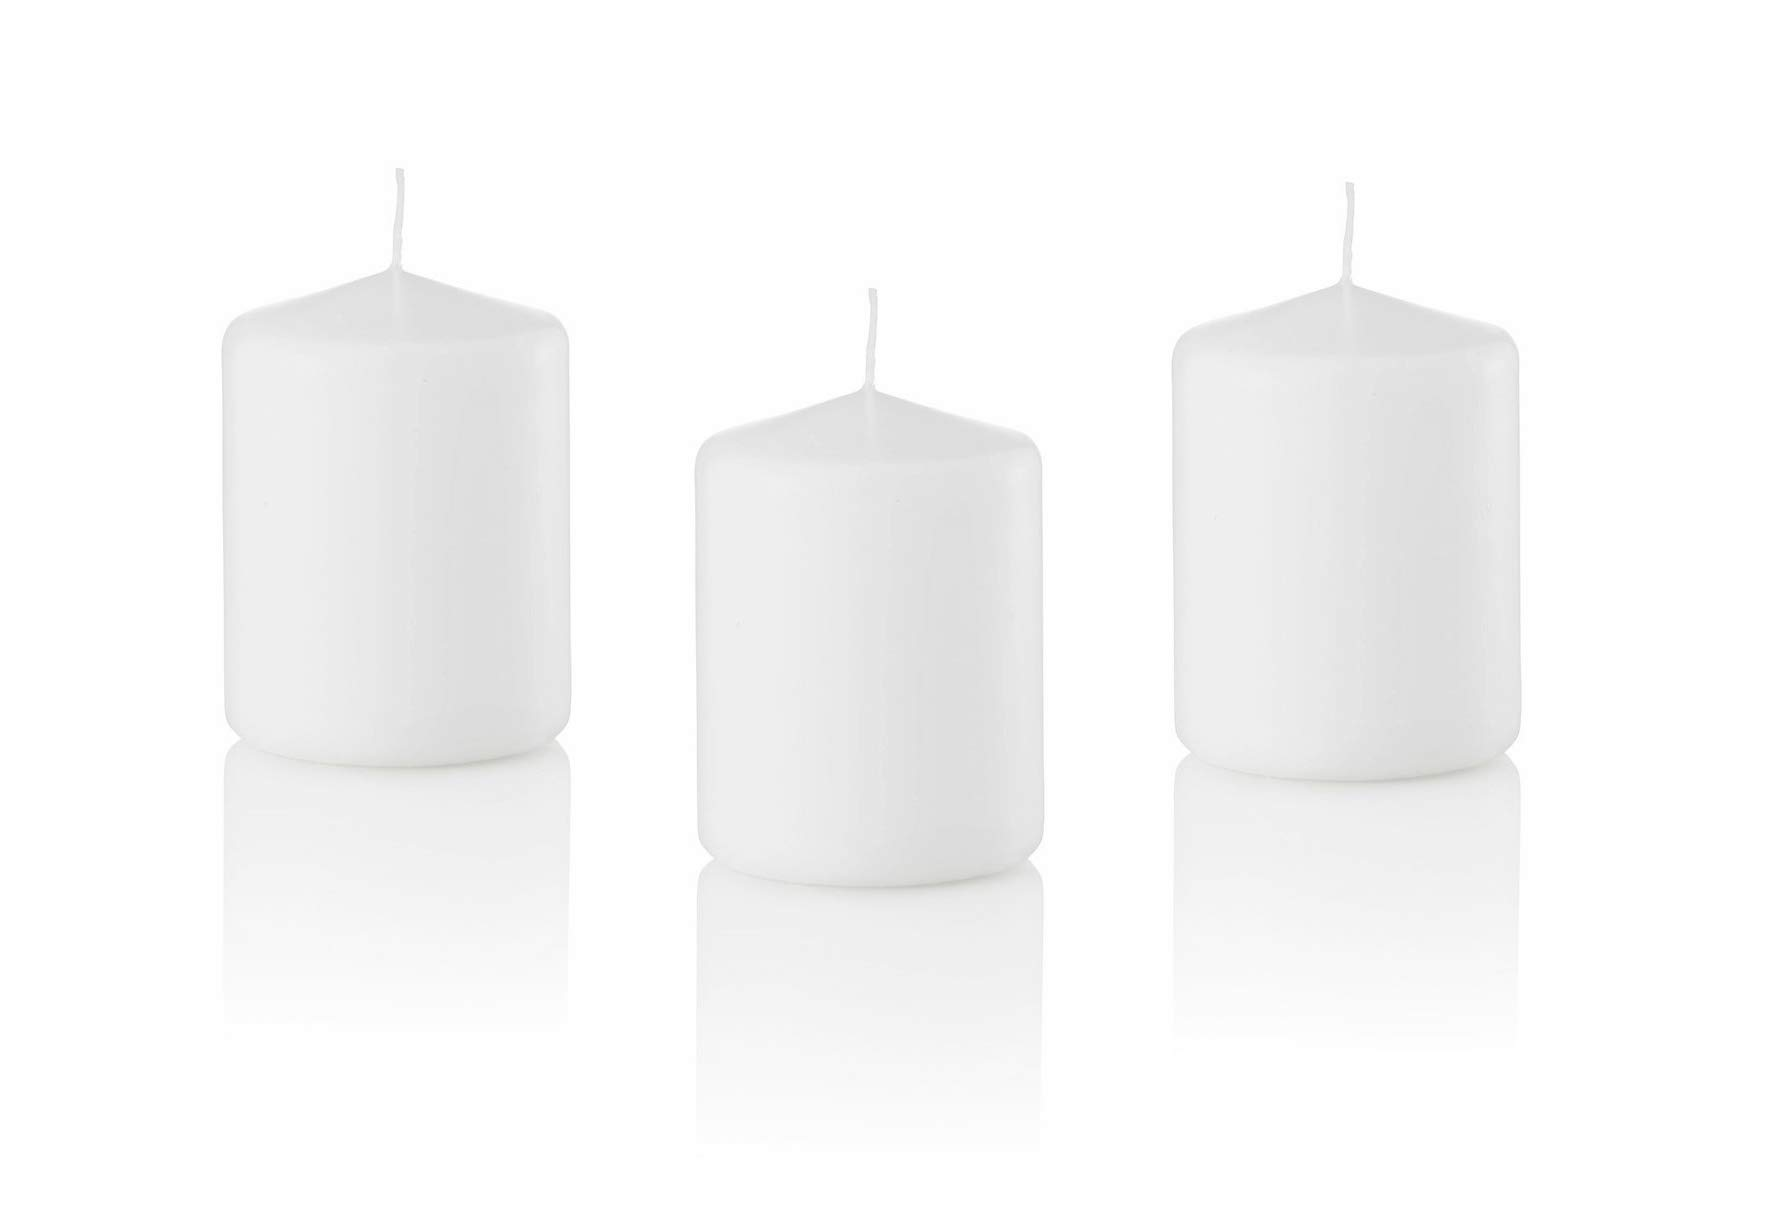 D'light Online 3 X 4 Pillar Candles Bulk Event Pack Round Unscented White Pillar Candles Qty 12 - (White) by D'light Online